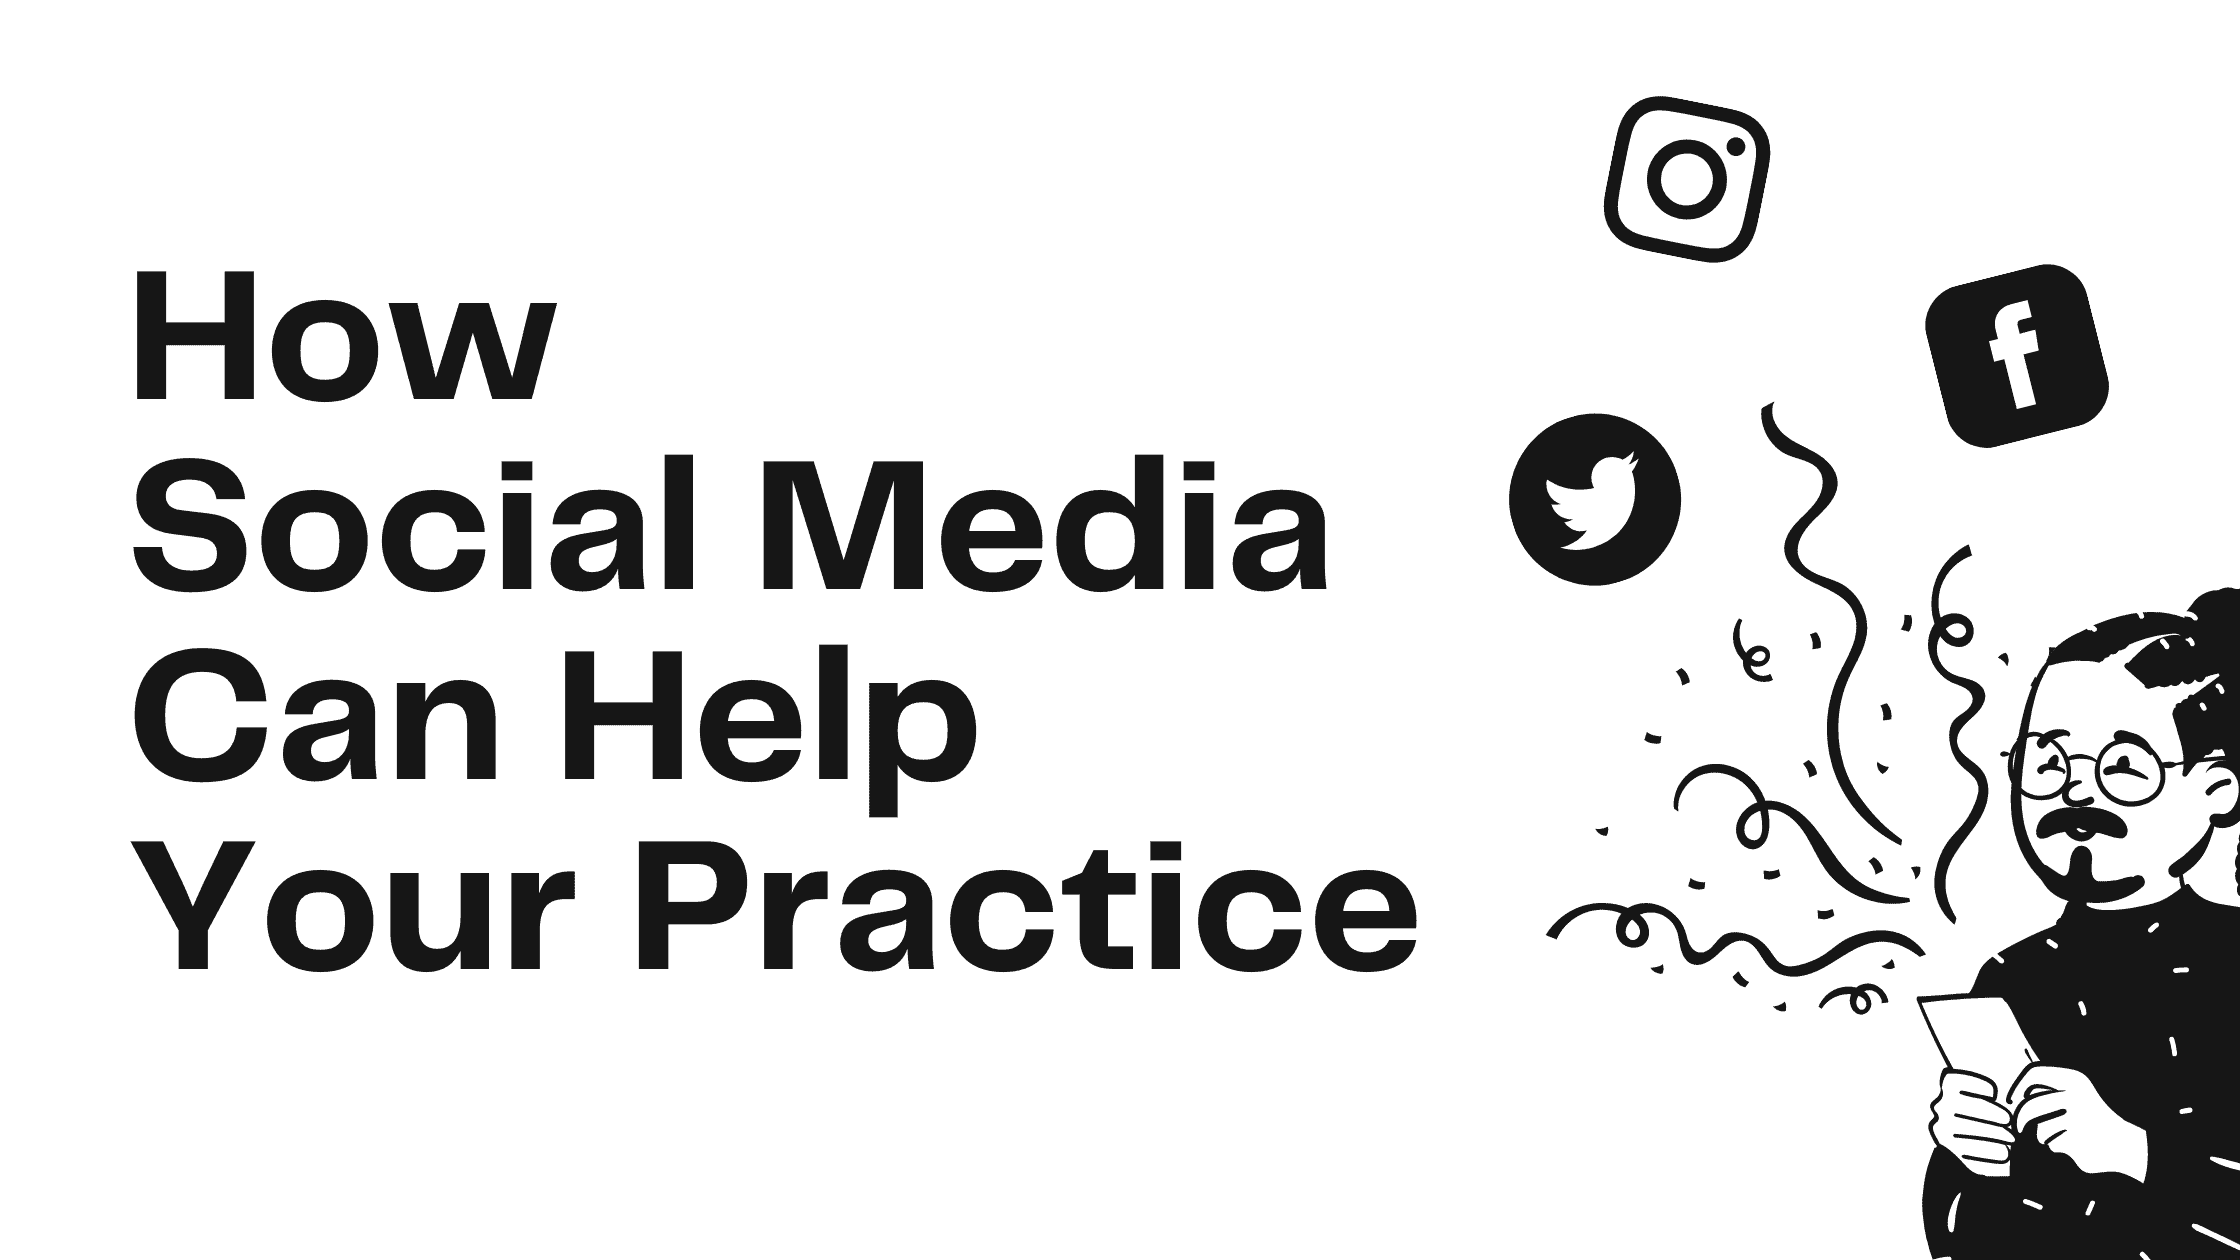 How Social Media Can Help Your Practice